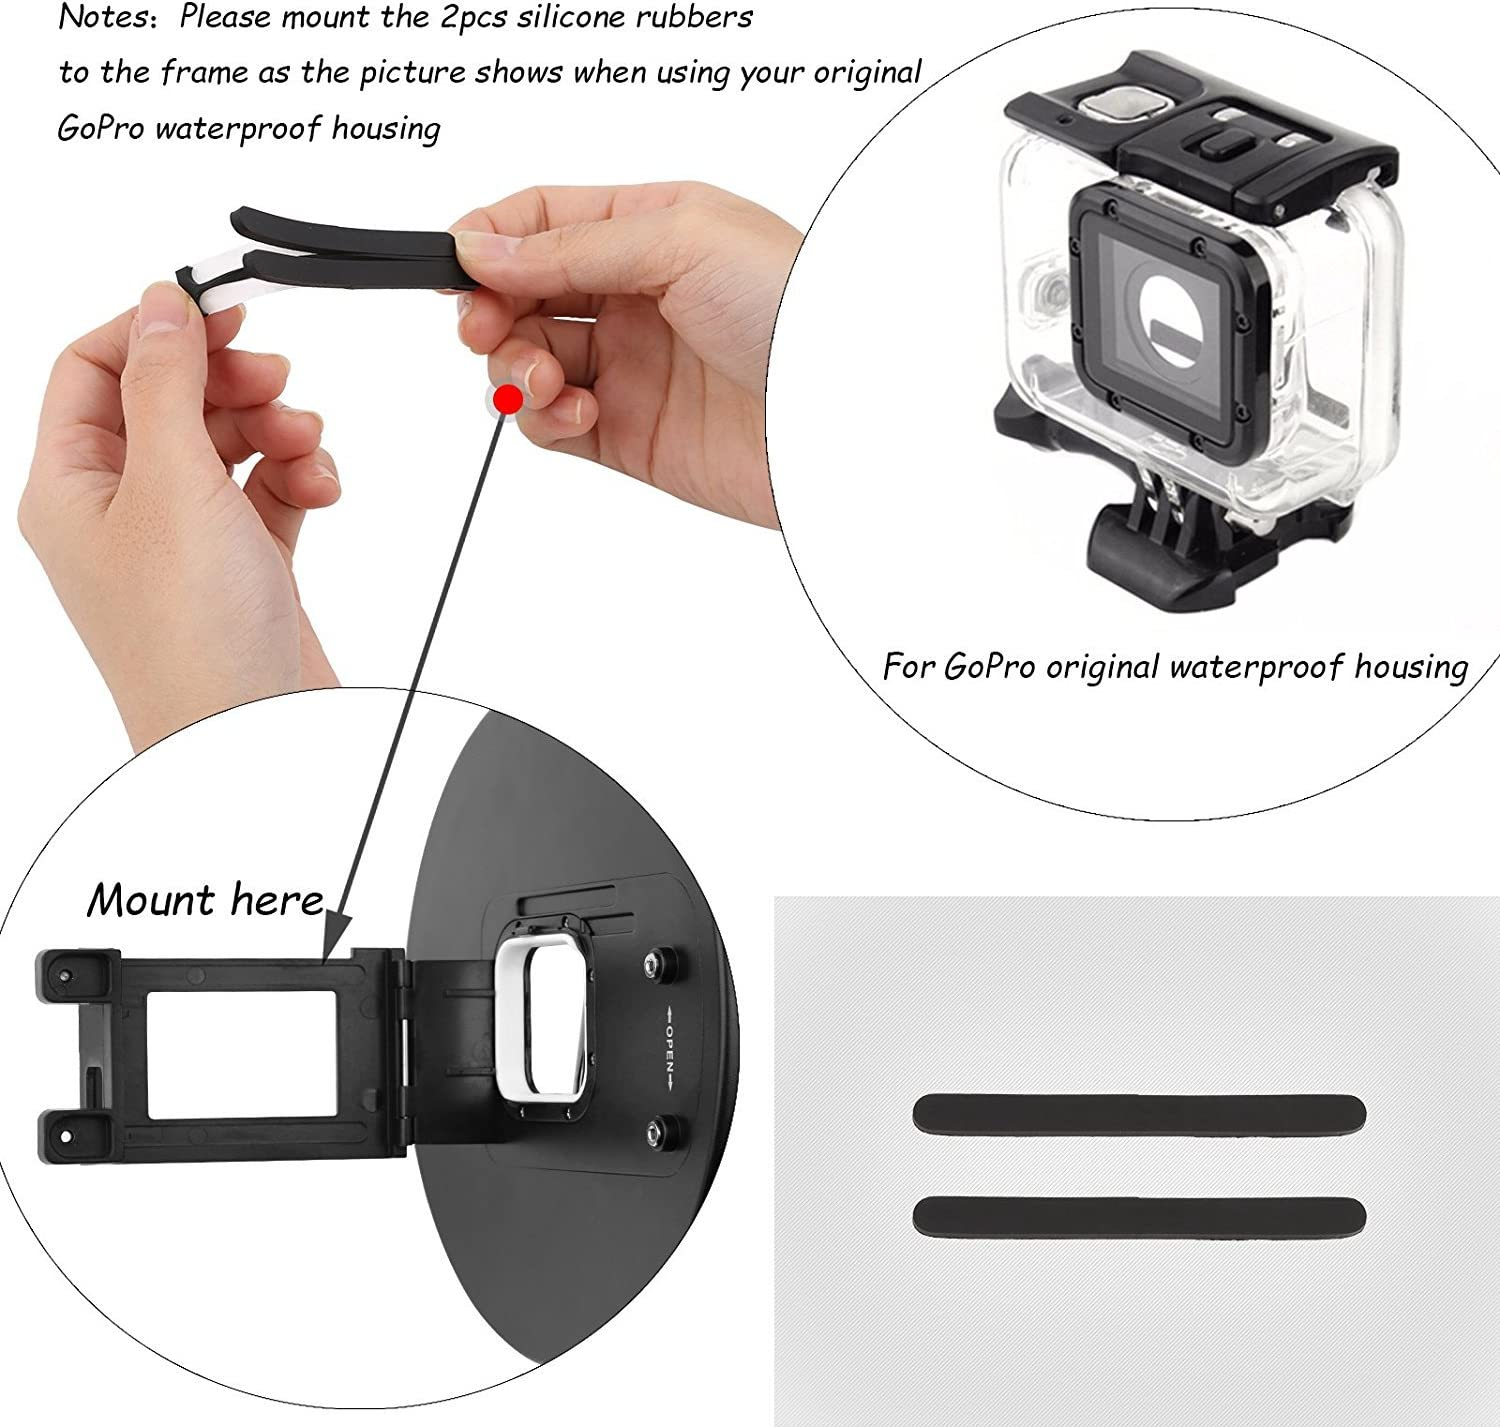 SHOOT Aluminium Alloy Underwater Video Light Stabilizer Tray for GoPro OSMO and Any Other Camera with 1//4 inch Screw Hole